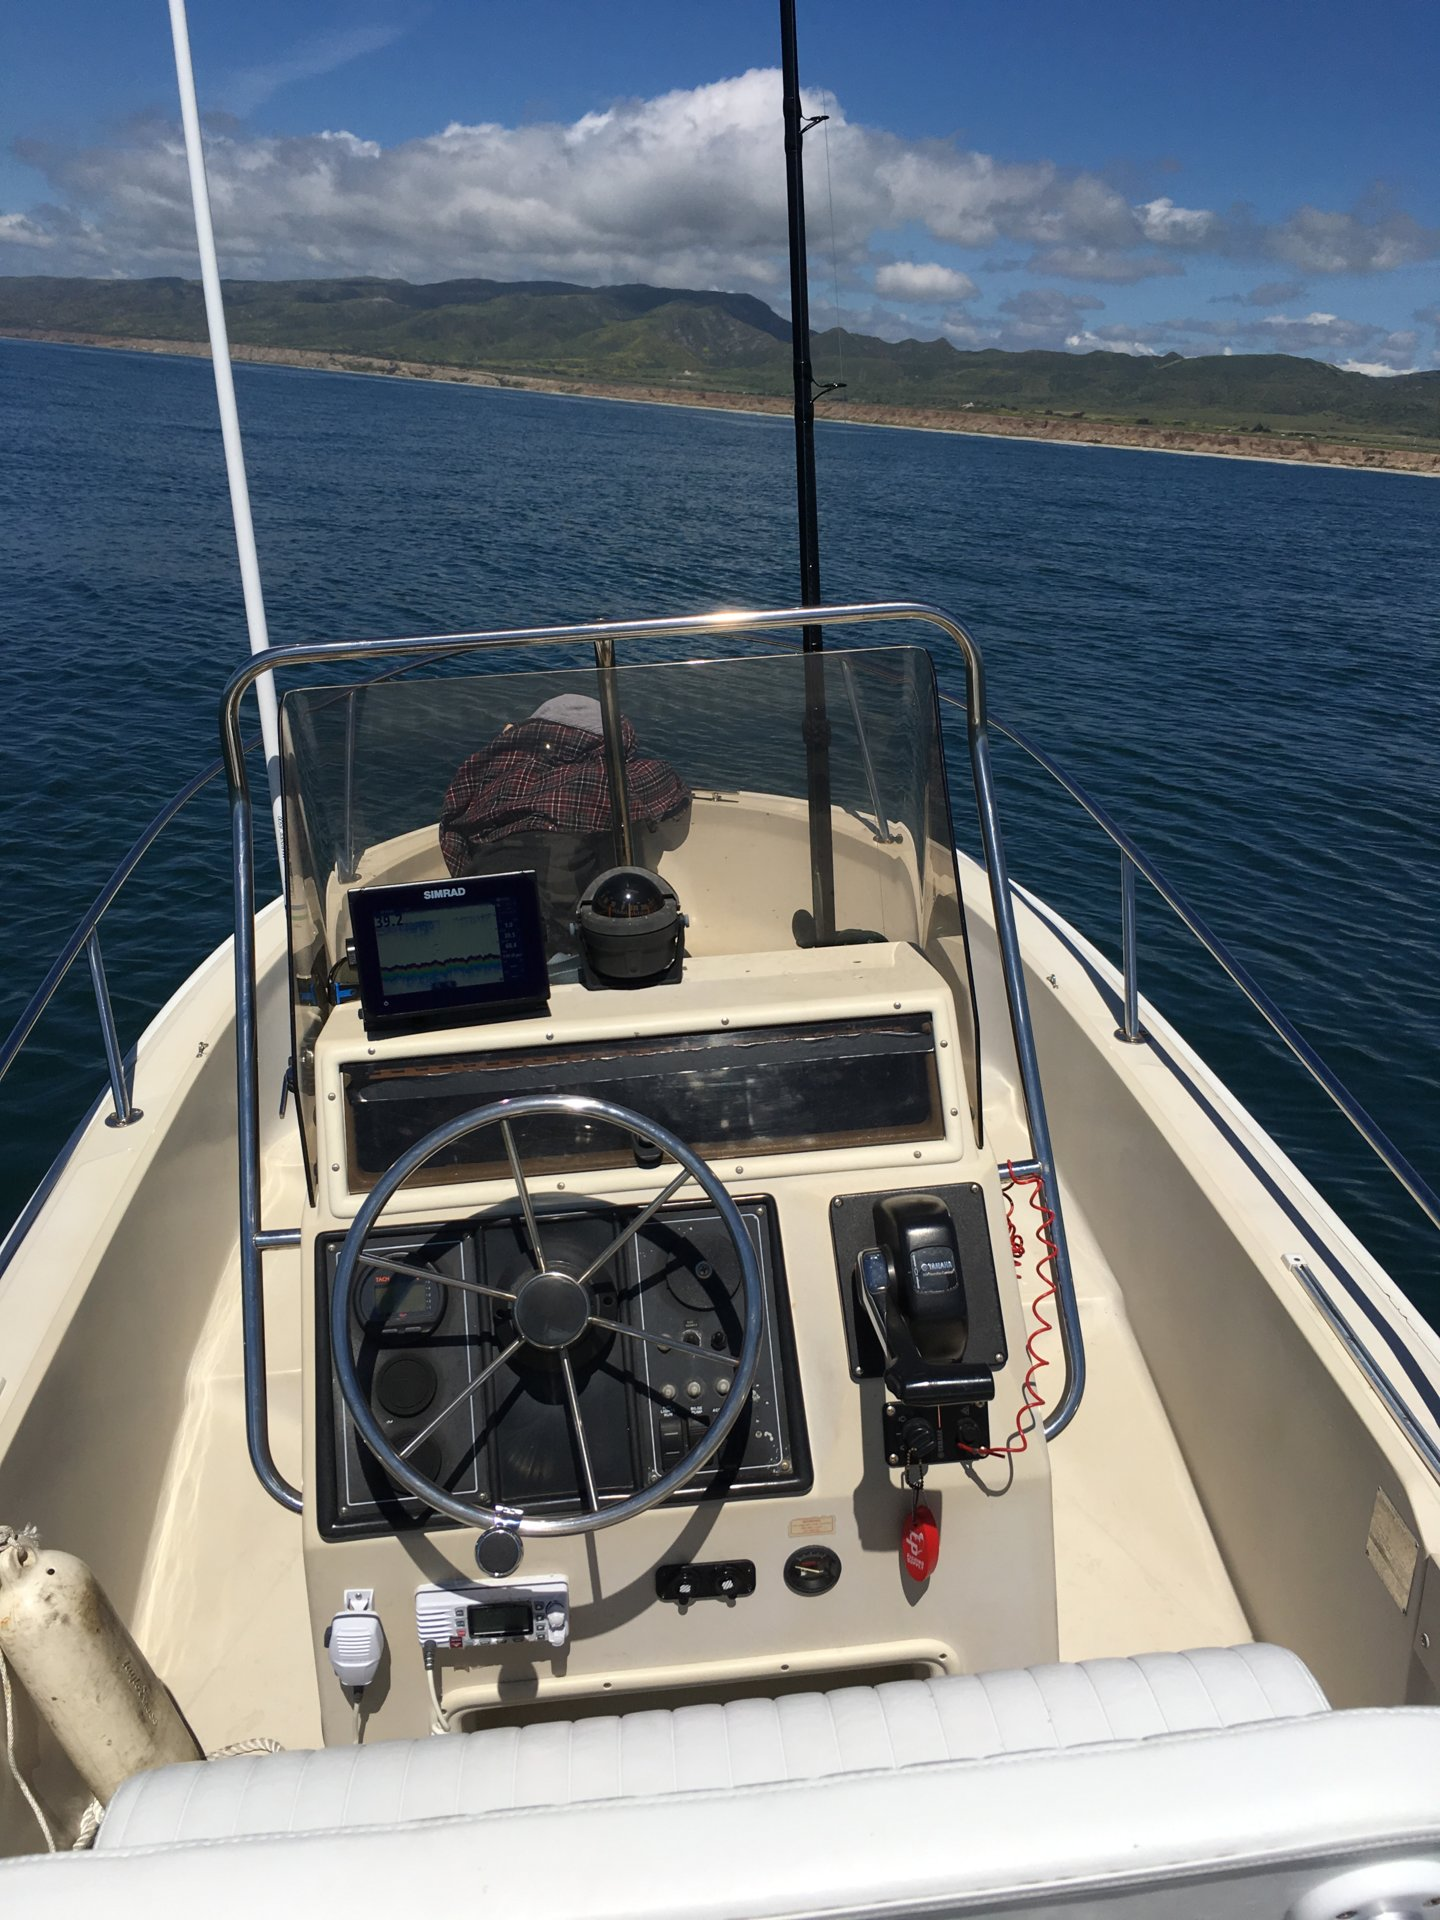 Aluminum Boats For Sale Bc >> 1994 Boston Whaler Outrage 17 | Bloodydecks